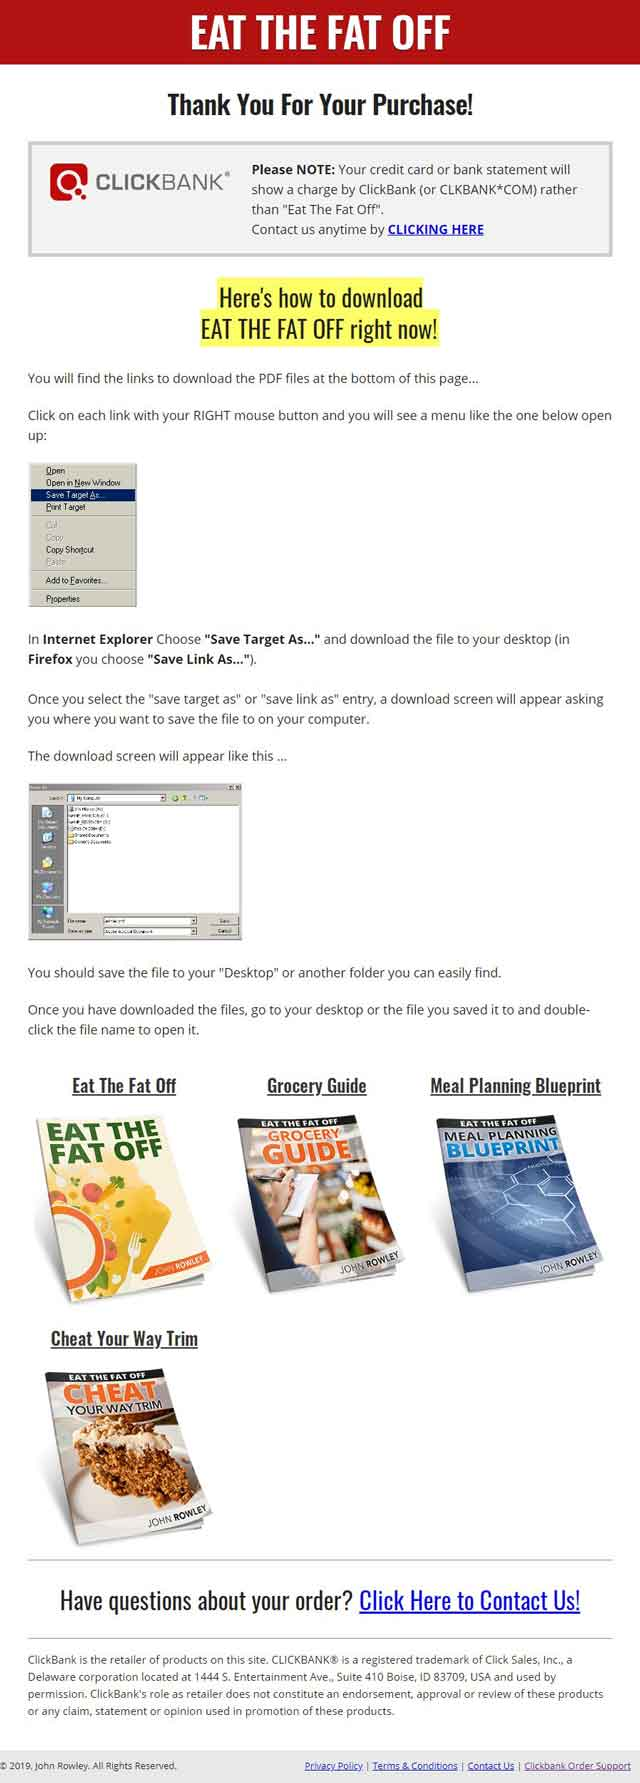 Eat The Fat Off, Eat The Fat Off Review: What's the 21-Day Regime Like …